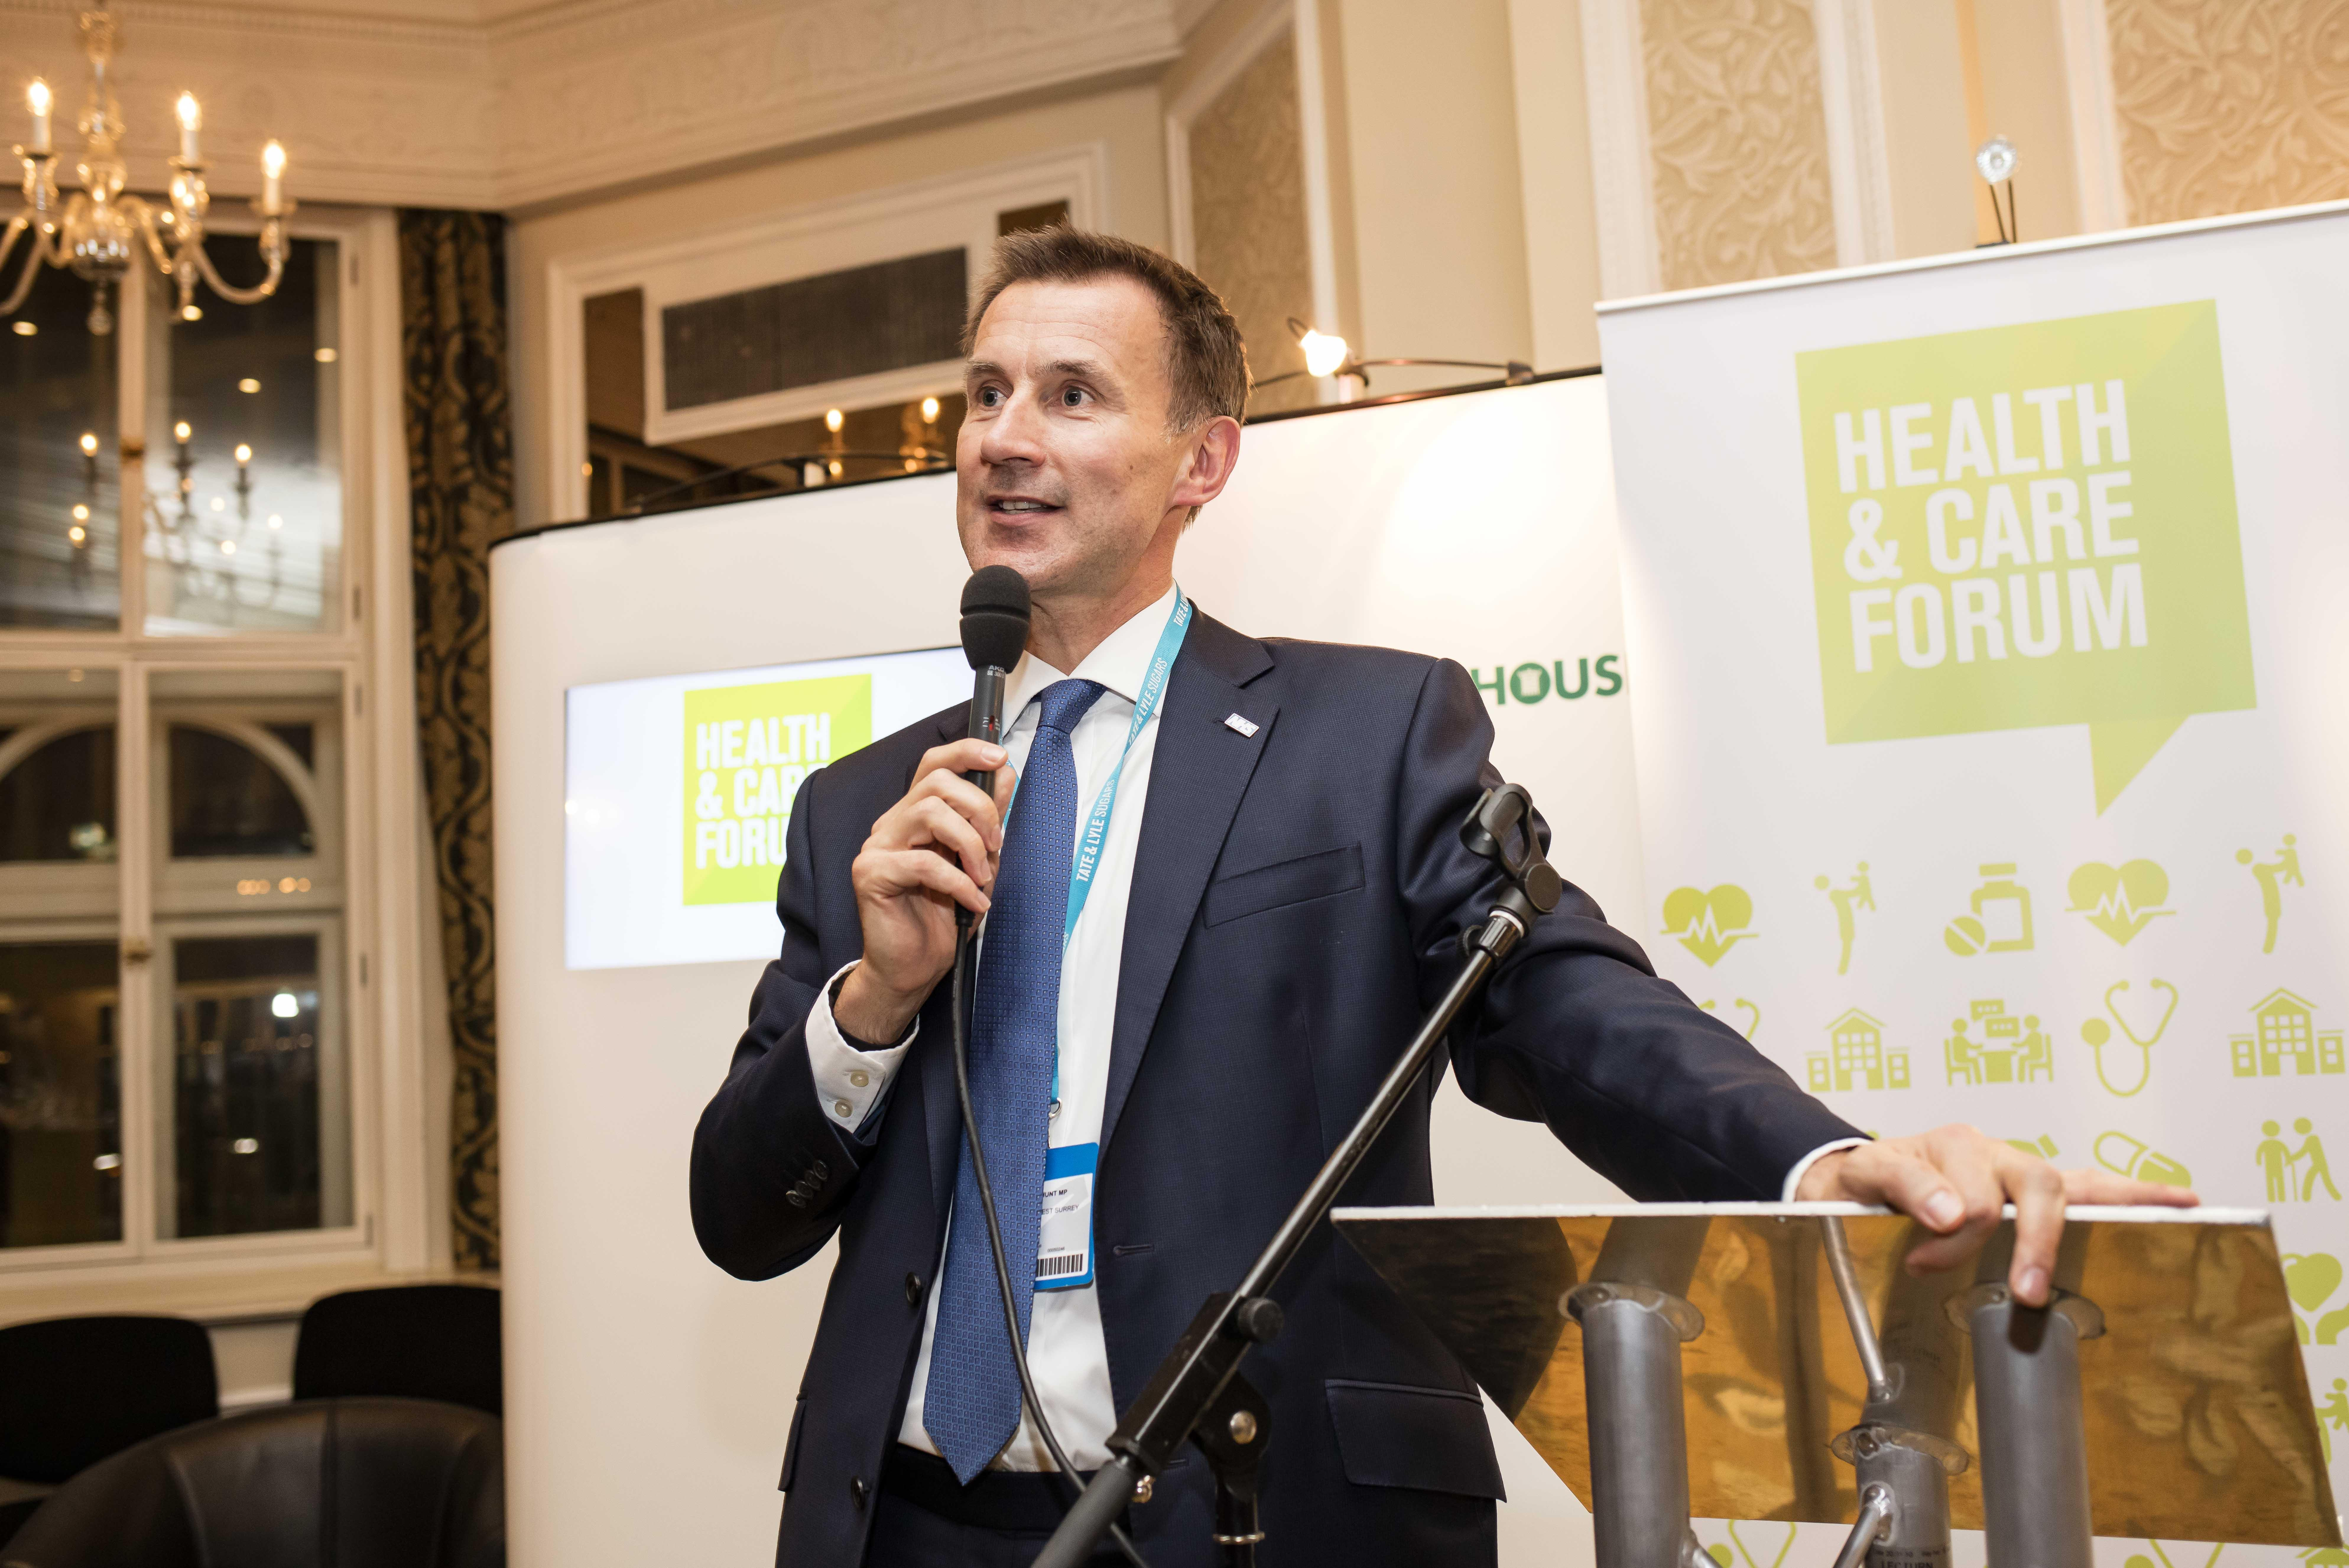 Rt Hon Jeremy Hunt MP speaking at the Health and Care Forum Reception